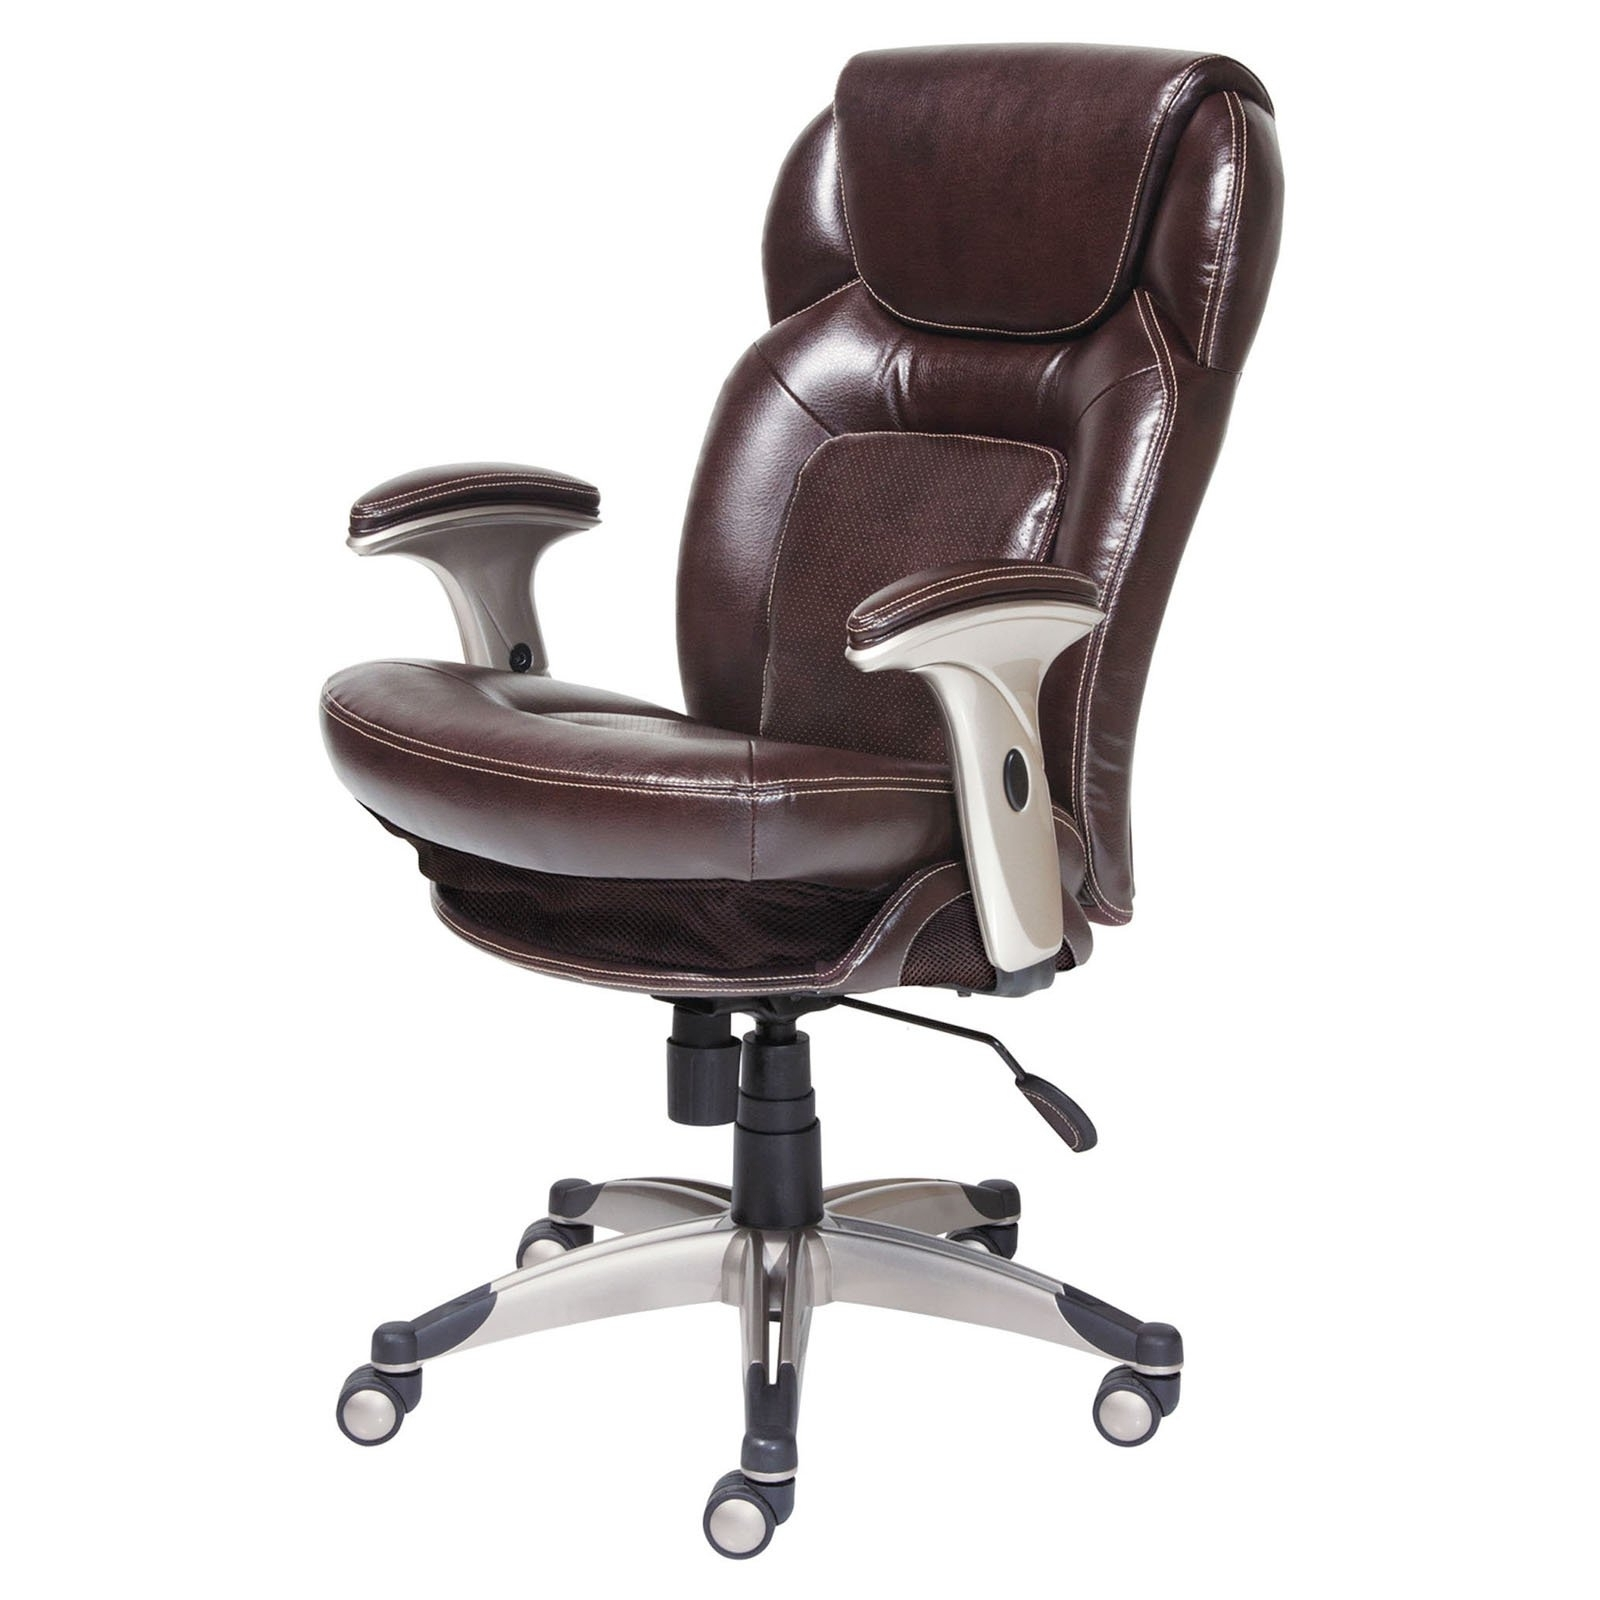 Widely Used Lane Executive Office Chairs Within Serta Air Health & Wellness Eco Friendly Bonded Leather Executive (View 16 of 20)